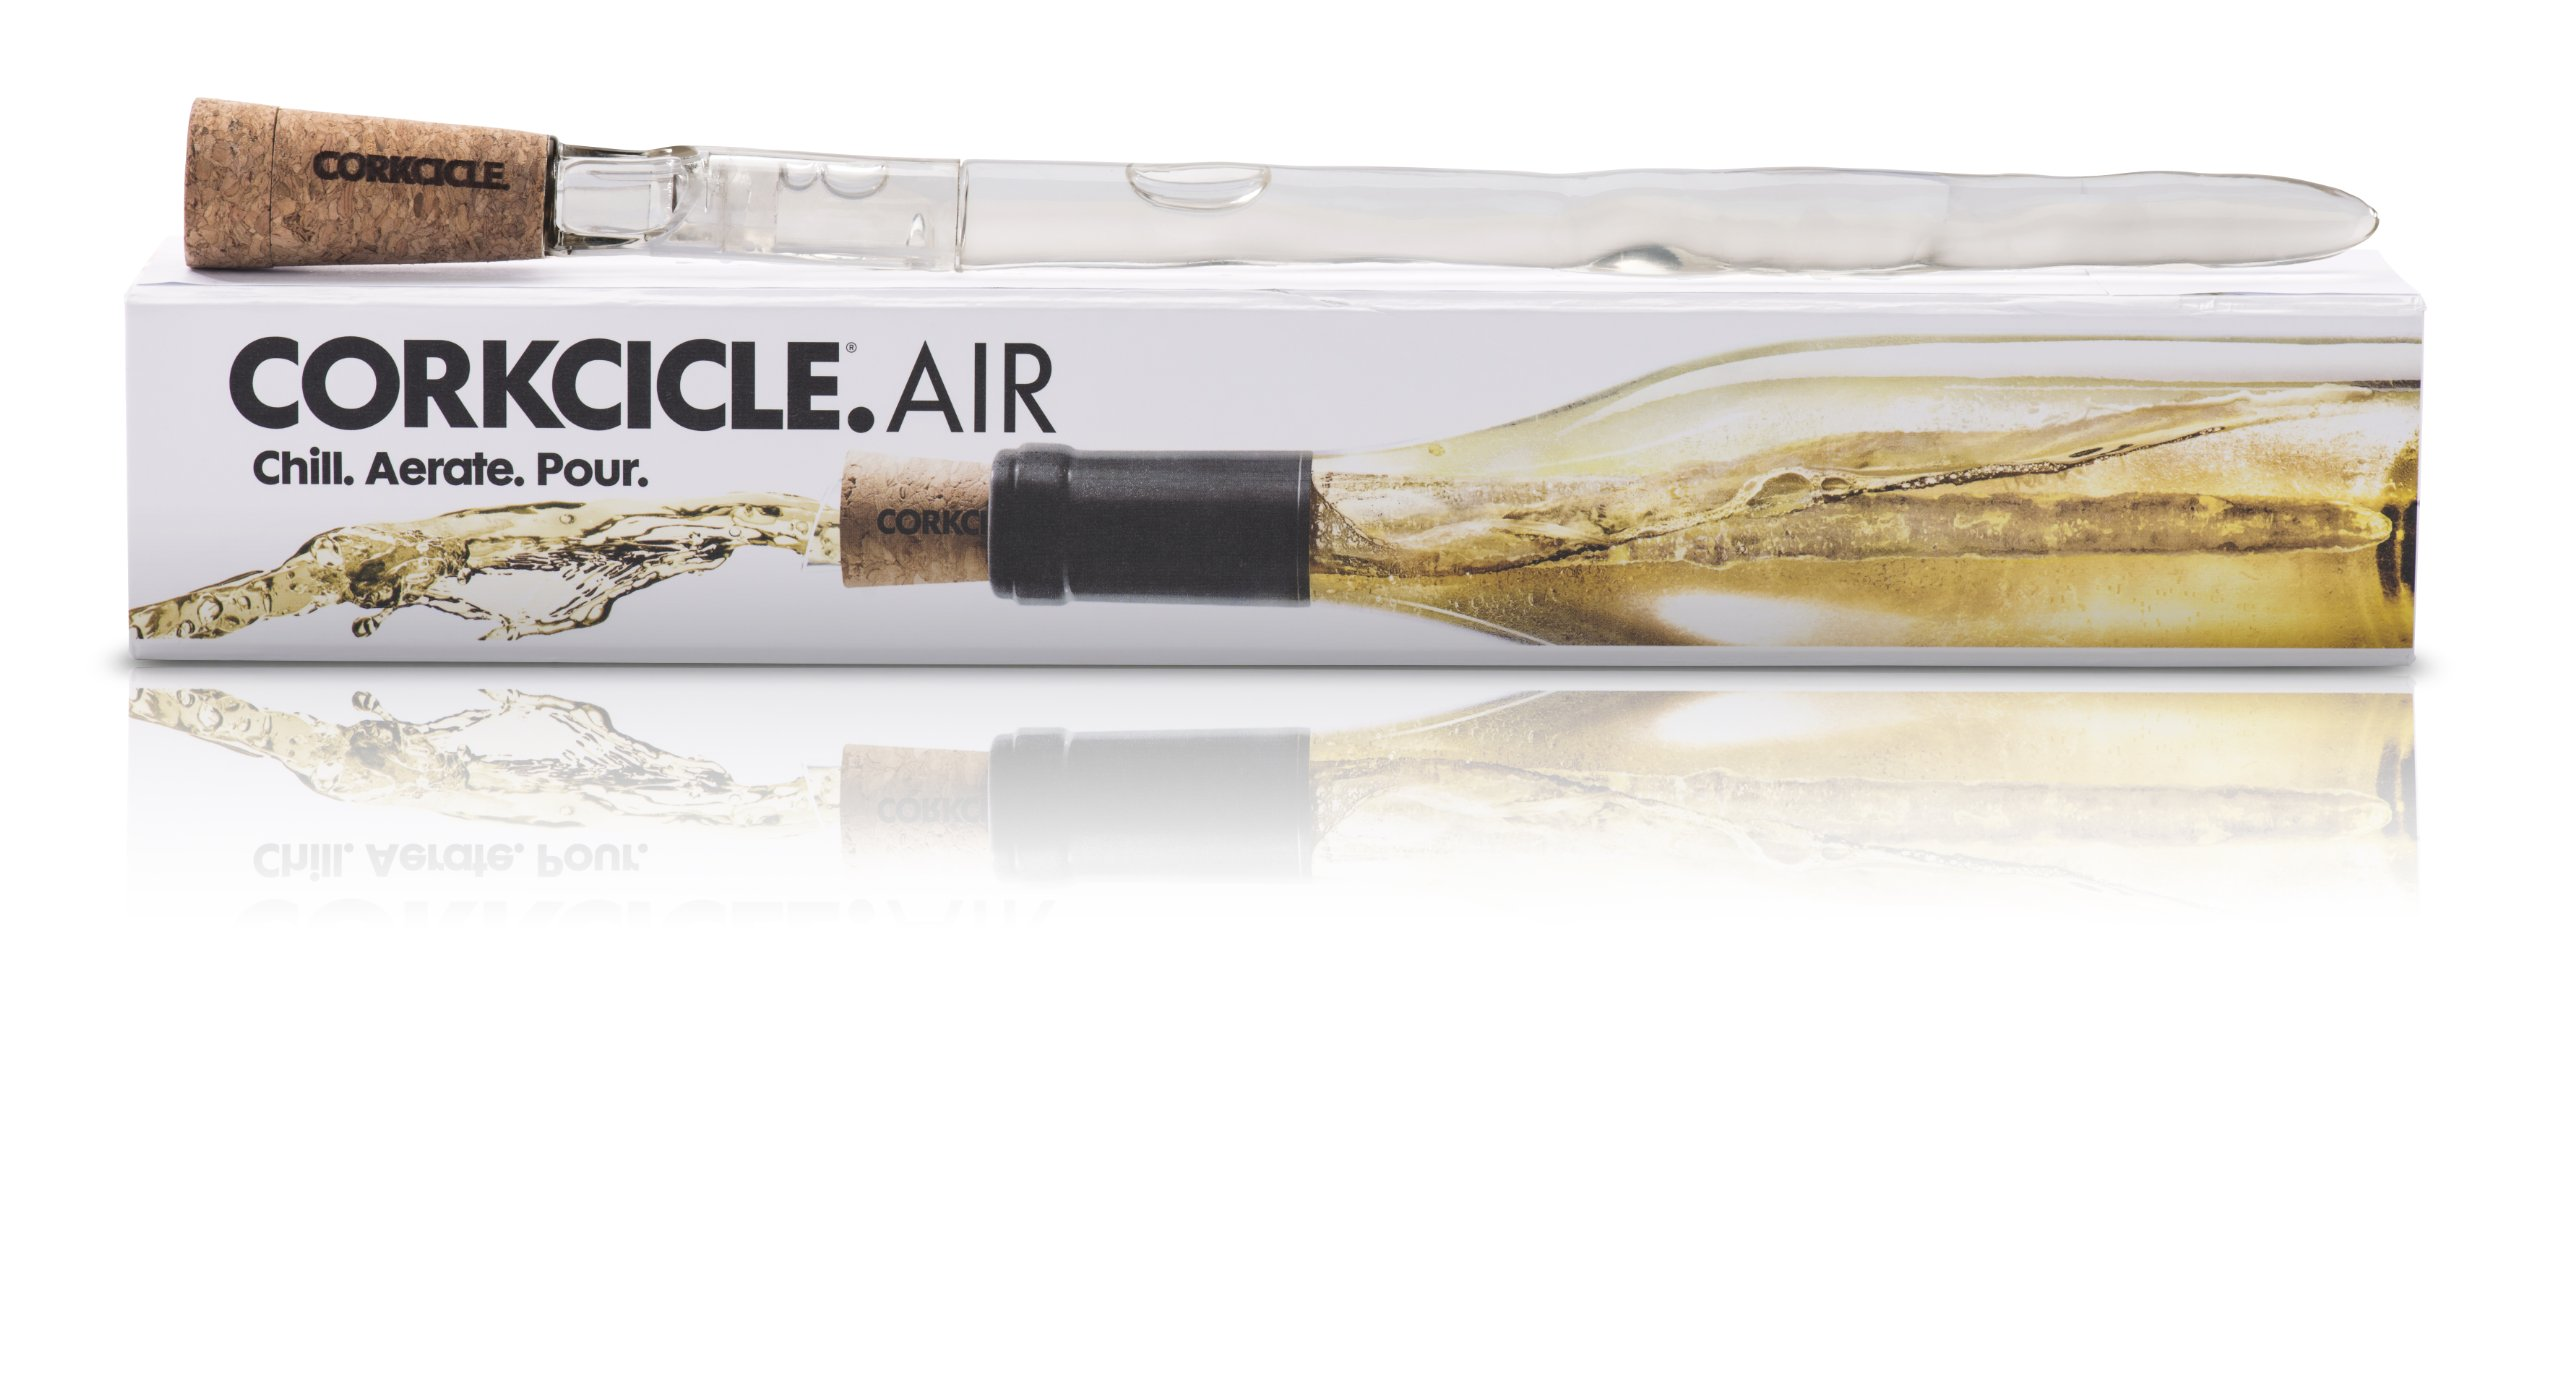 Corkcicle Air 4-in-1 Chiller, Aerator, Pourer, Stopper by Corkcicle (Image #3)